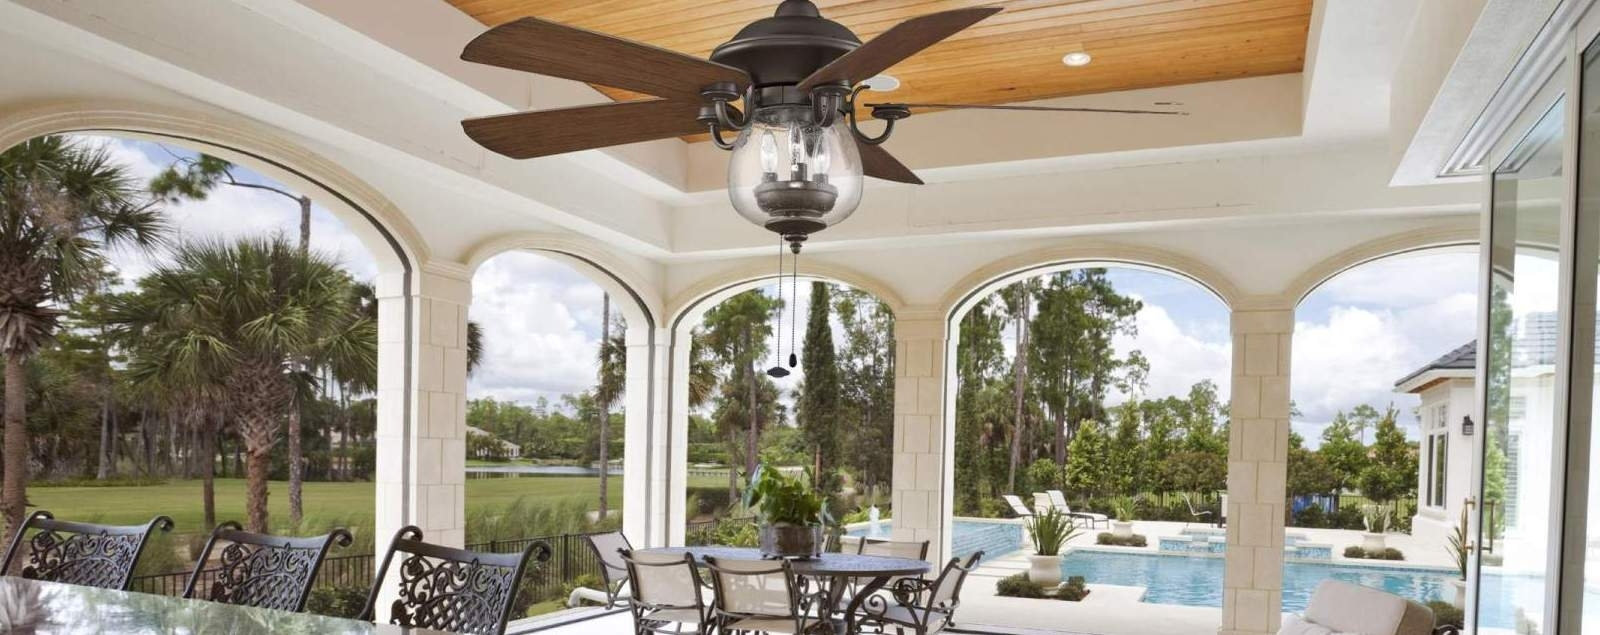 Famous Outdoor Ceiling Fans – Shop Wet, Dry, And Damp Rated Outdoor Fans Regarding Damp Rated Outdoor Ceiling Fans (View 6 of 20)